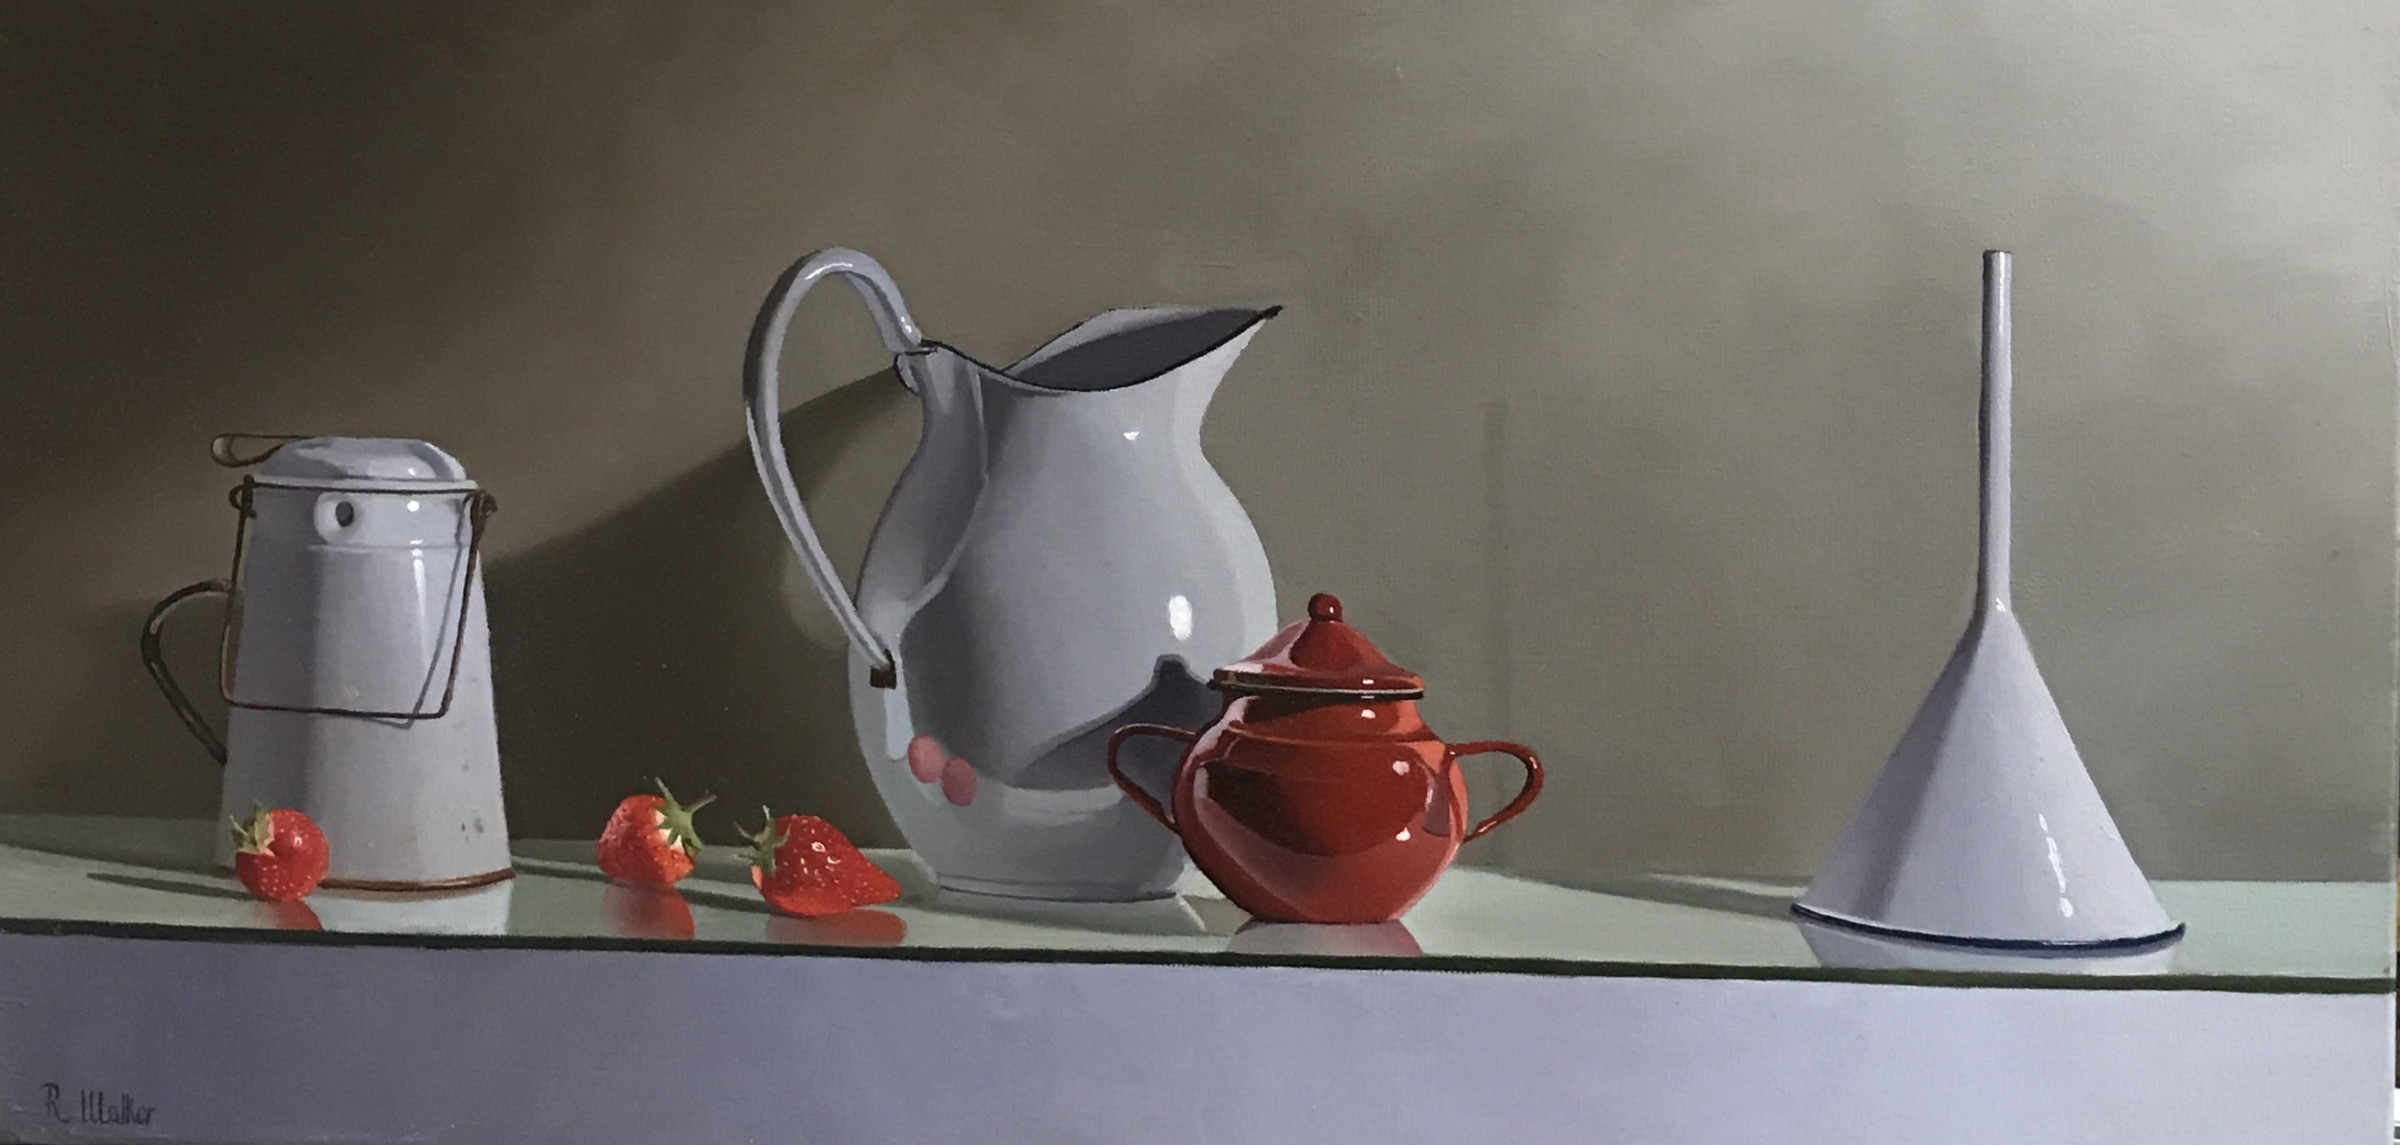 <span class=&#34;link fancybox-details-link&#34;><a href=&#34;/artists/67-robert-walker/works/658-robert-walker-strawberries-with-white-funnel/&#34;>View Detail Page</a></span><div class=&#34;artist&#34;><strong>Robert Walker</strong></div> <div class=&#34;title&#34;><em>Strawberries with White Funnel</em></div> <div class=&#34;medium&#34;>Oil on Linen </div> <div class=&#34;dimensions&#34;>34 x 64 cm</div><div class=&#34;price&#34;>£1,300.00</div><div class=&#34;copyright_line&#34;>Copyright The Artist</div>